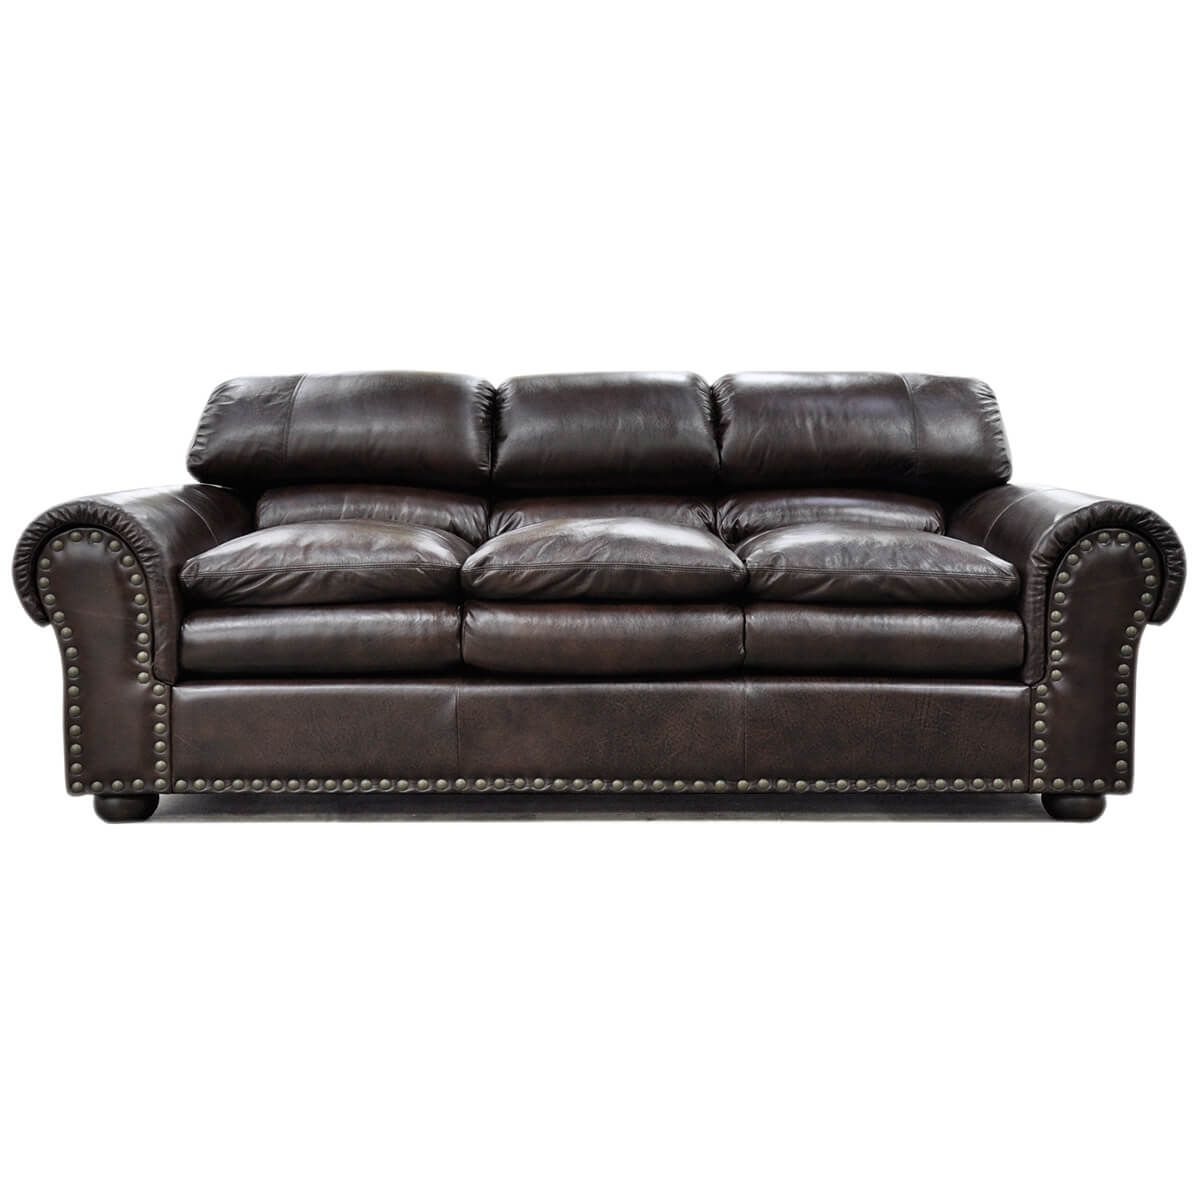 Williamsburg Sofa Full Top Grain Leather Made In California Comes In A Variety Of Shapes And Sizes Over Leather Furniture Top Grain Leather Pull Out Bed